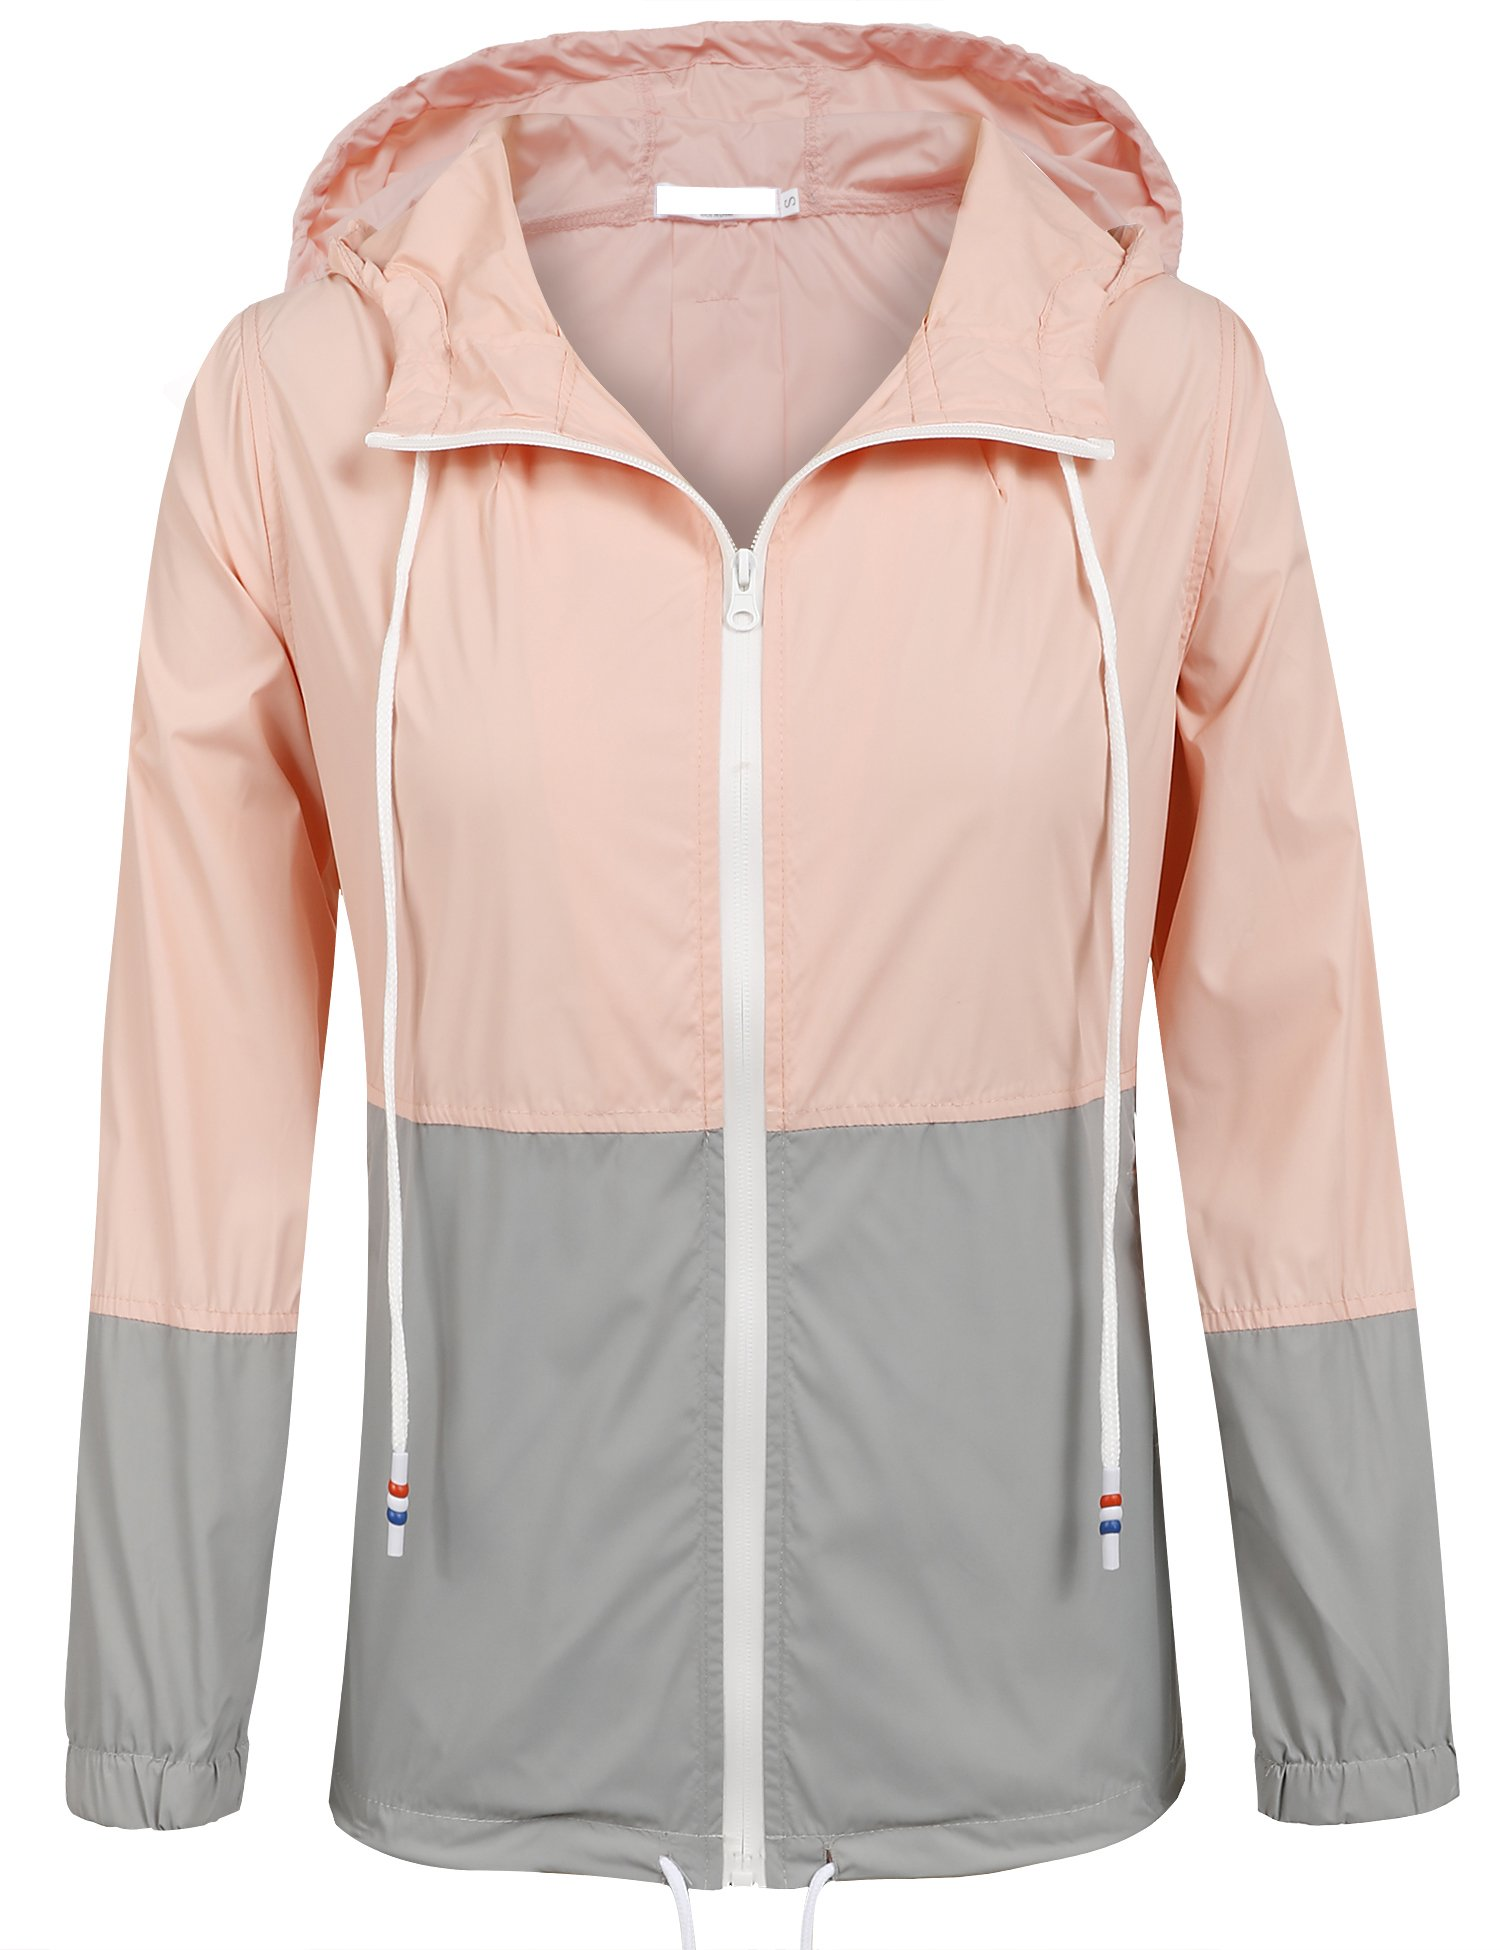 SoTeer Women's Waterproof Raincoat Outdoor Hooded Rain Jacket (Pink/Gray M) by SoTeer